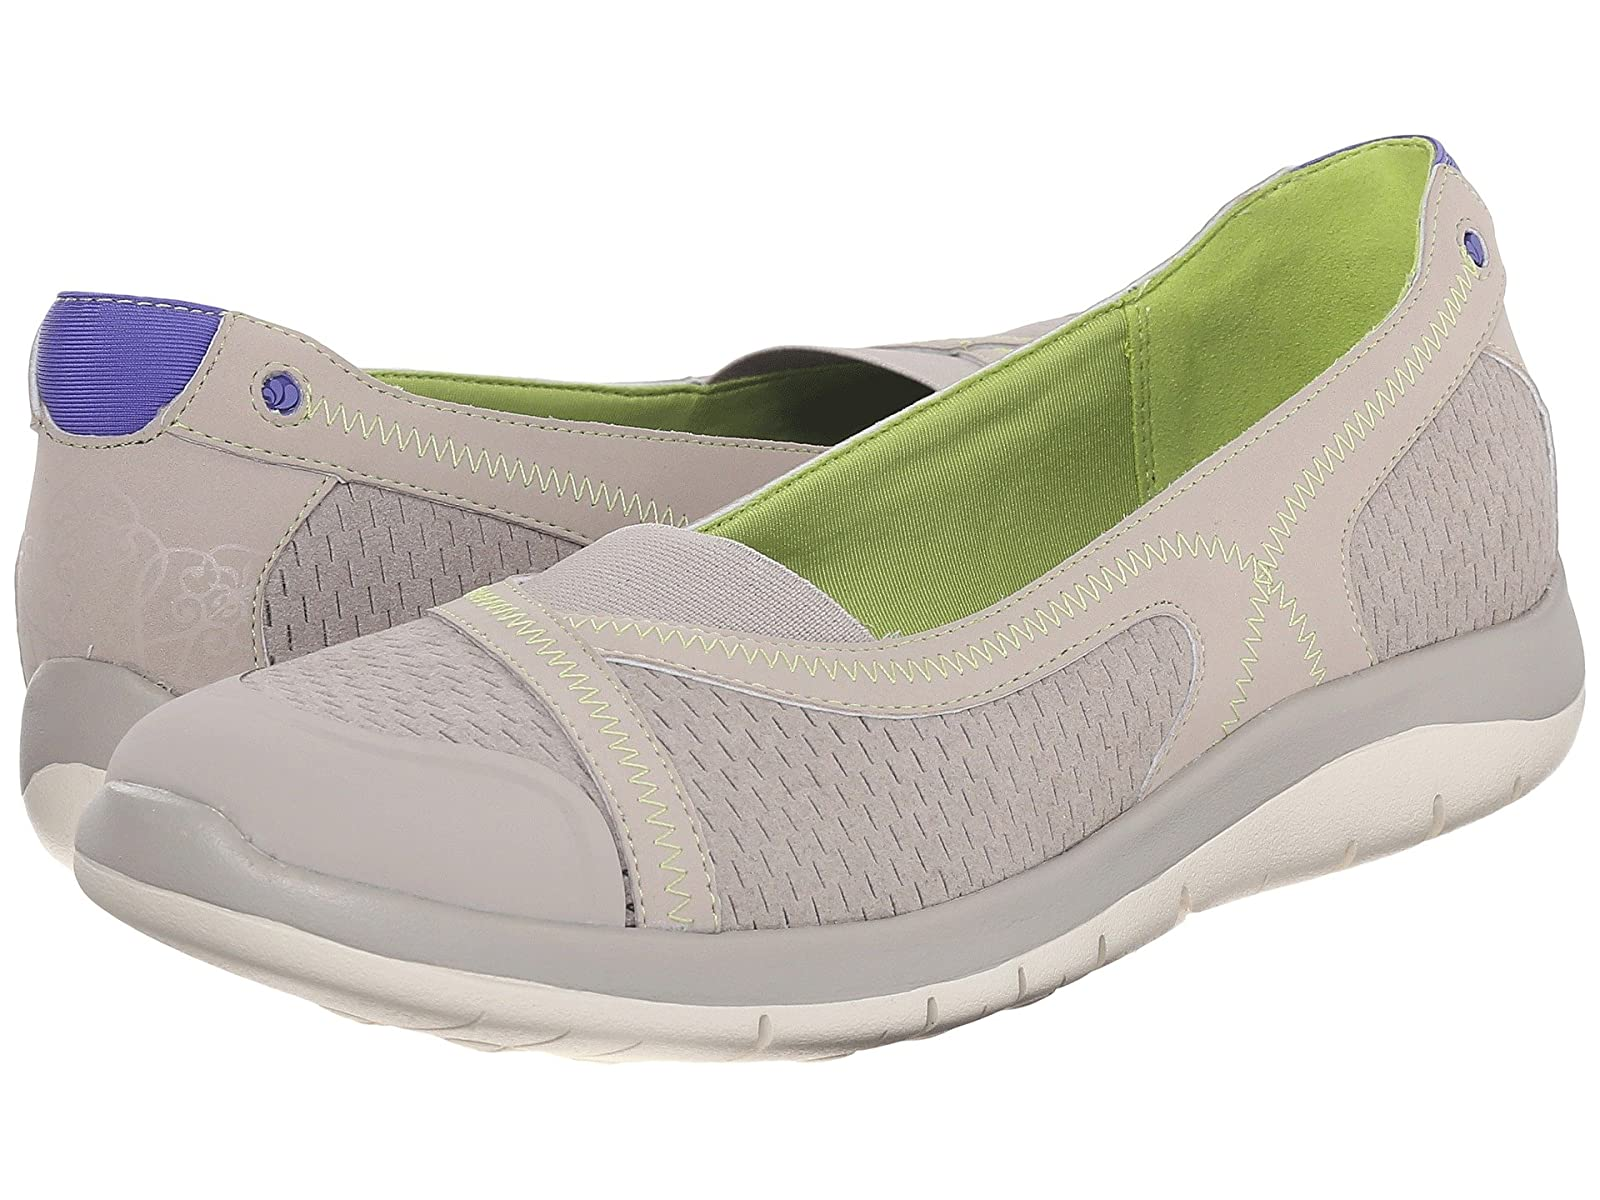 Rockport Cobb Hill Collection Cobb Hill FitSpaCheap and distinctive eye-catching shoes